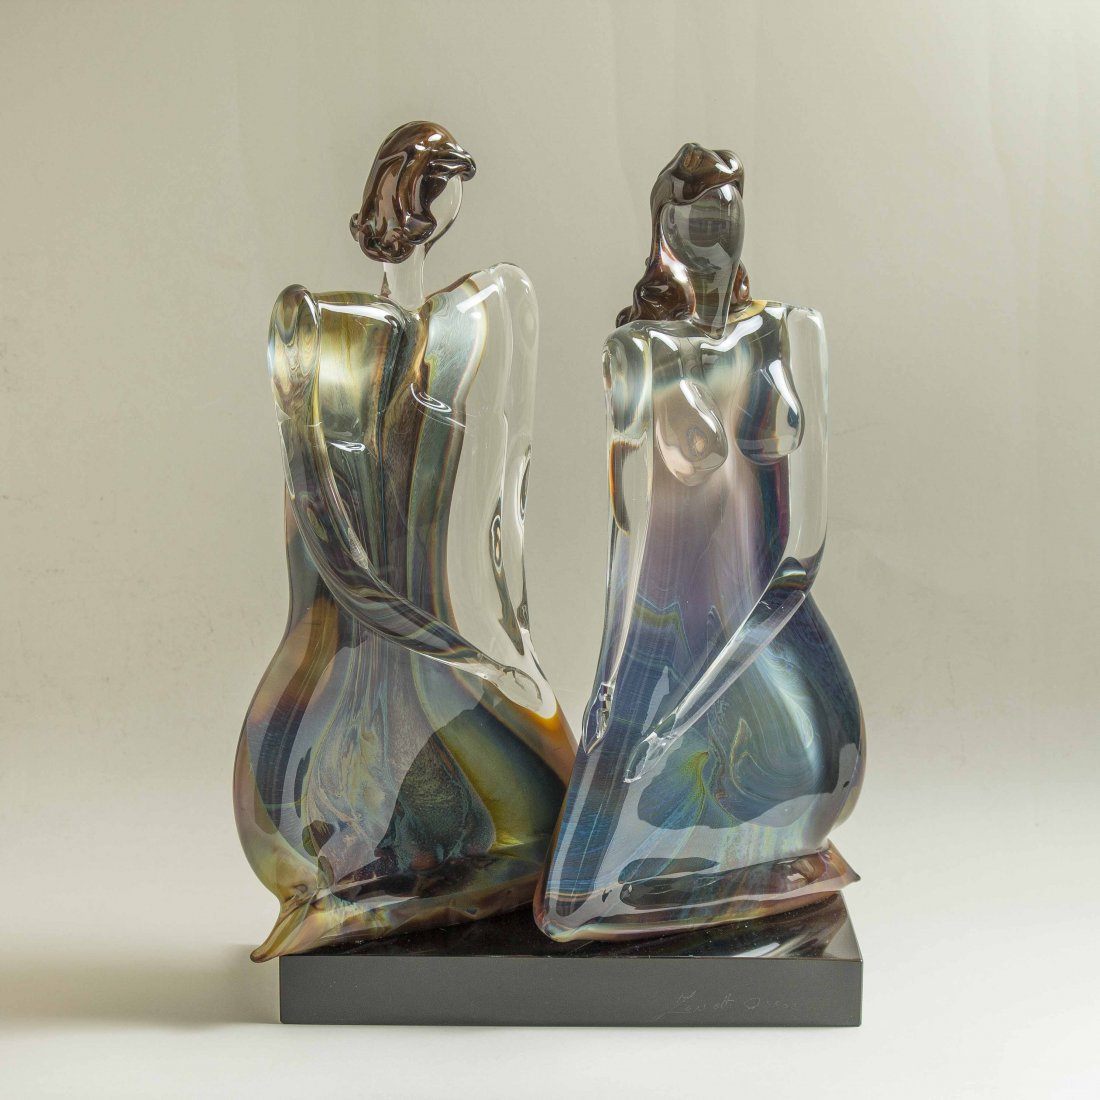 Oscar Zanetti (b. 1961) Murano Glass Sculpture